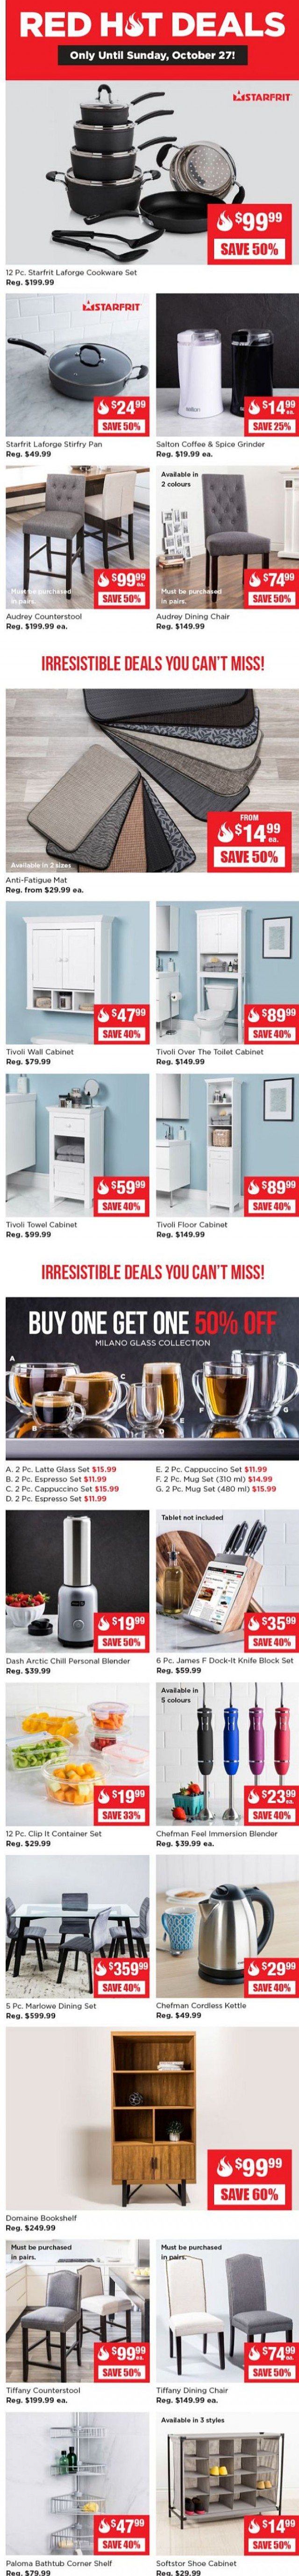 Coupon for: Kitchen Stuff Plus - Your Red Hot Deals Are Here